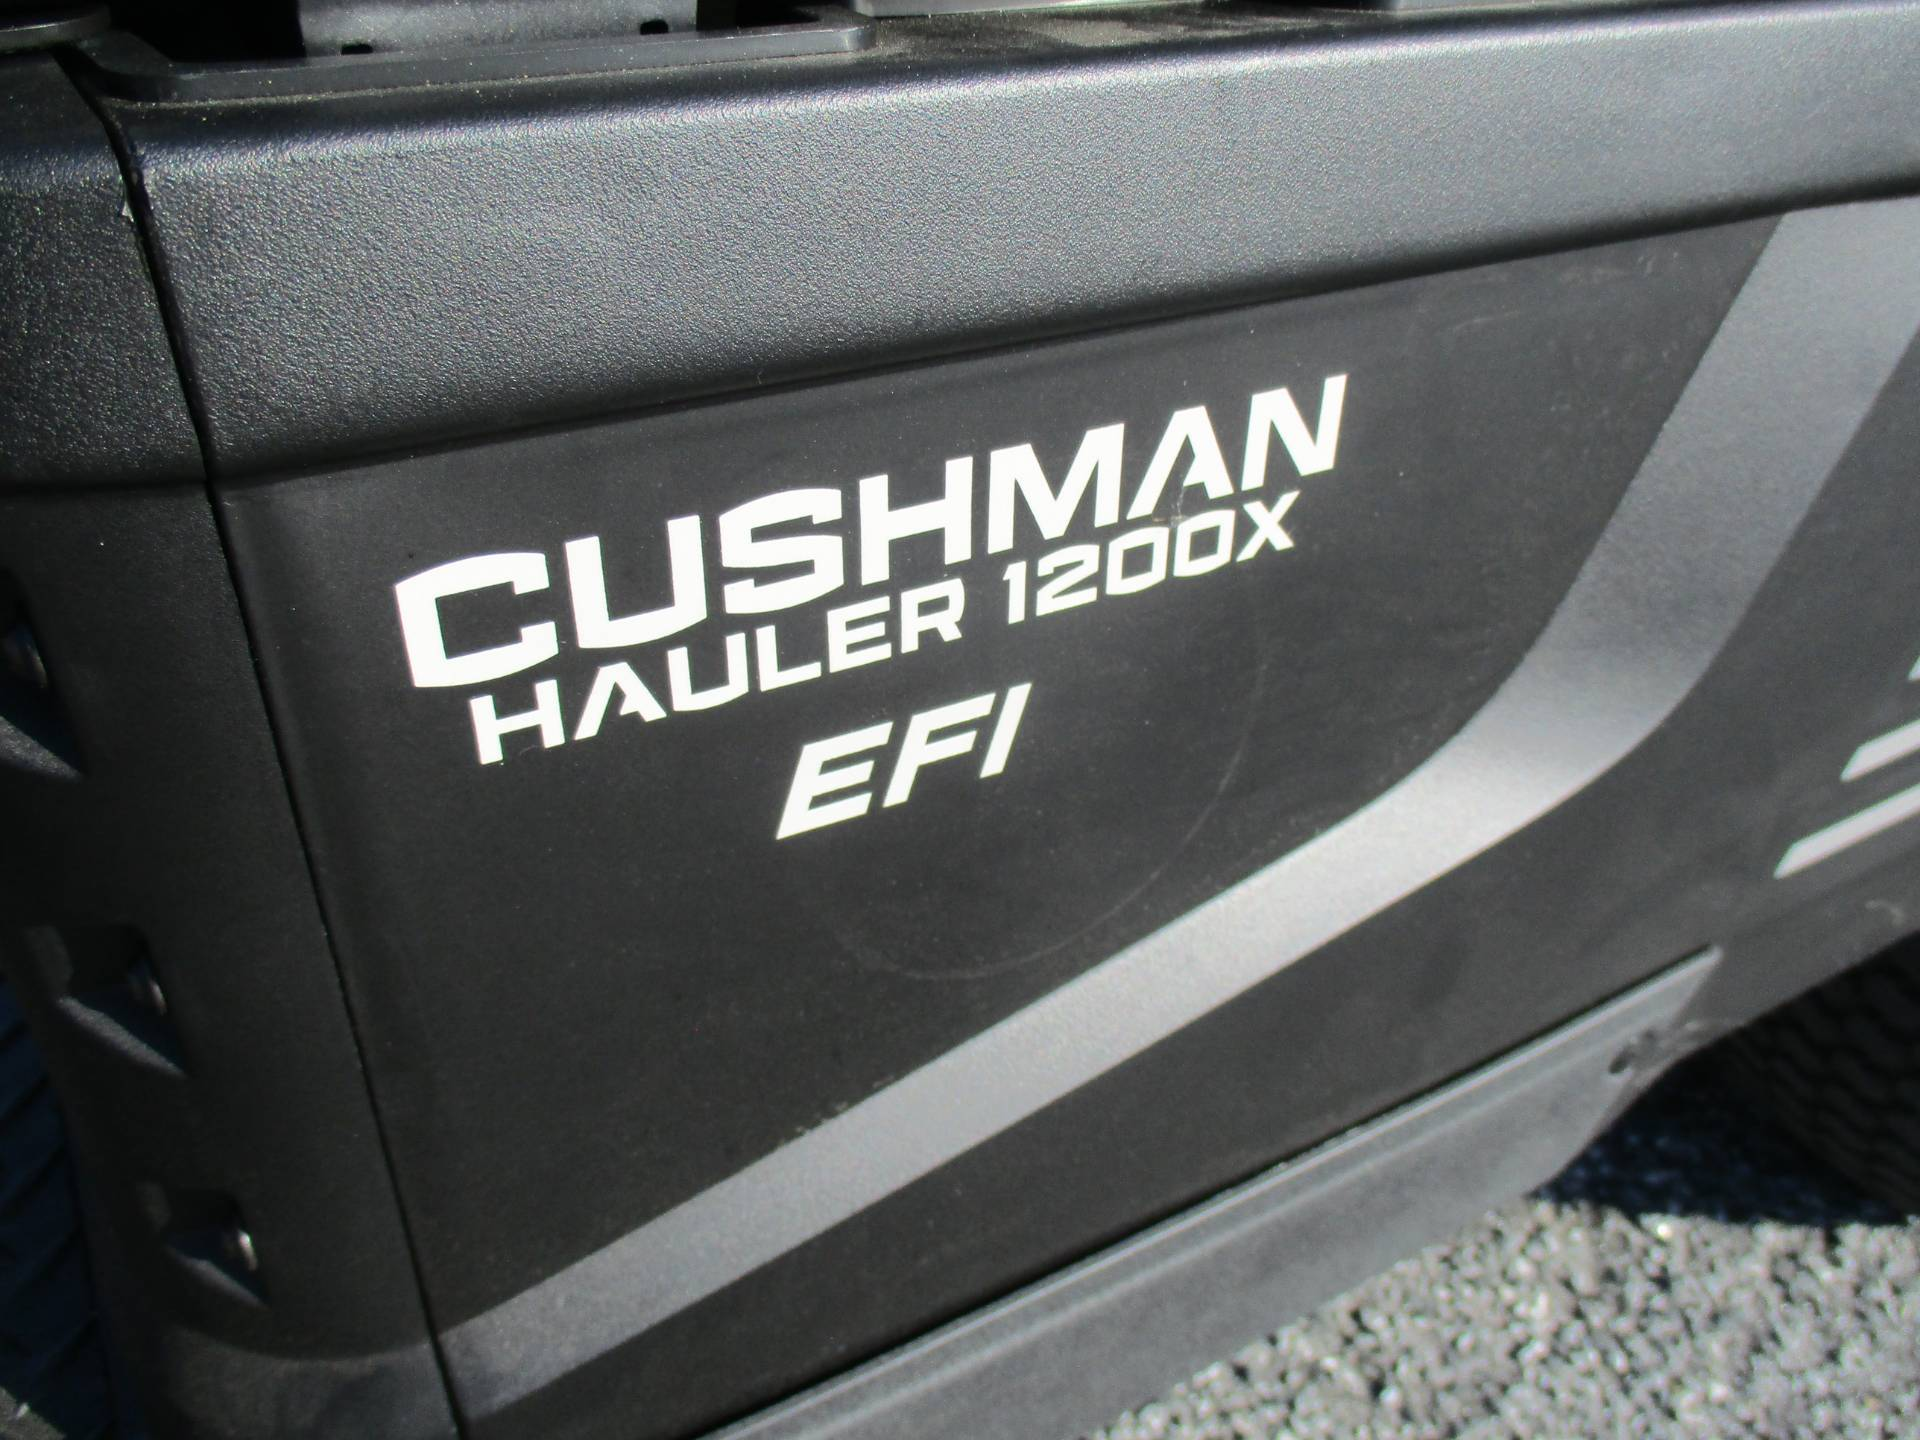 2020 Cushman Hauler 1200X Gas in Hendersonville, North Carolina - Photo 4